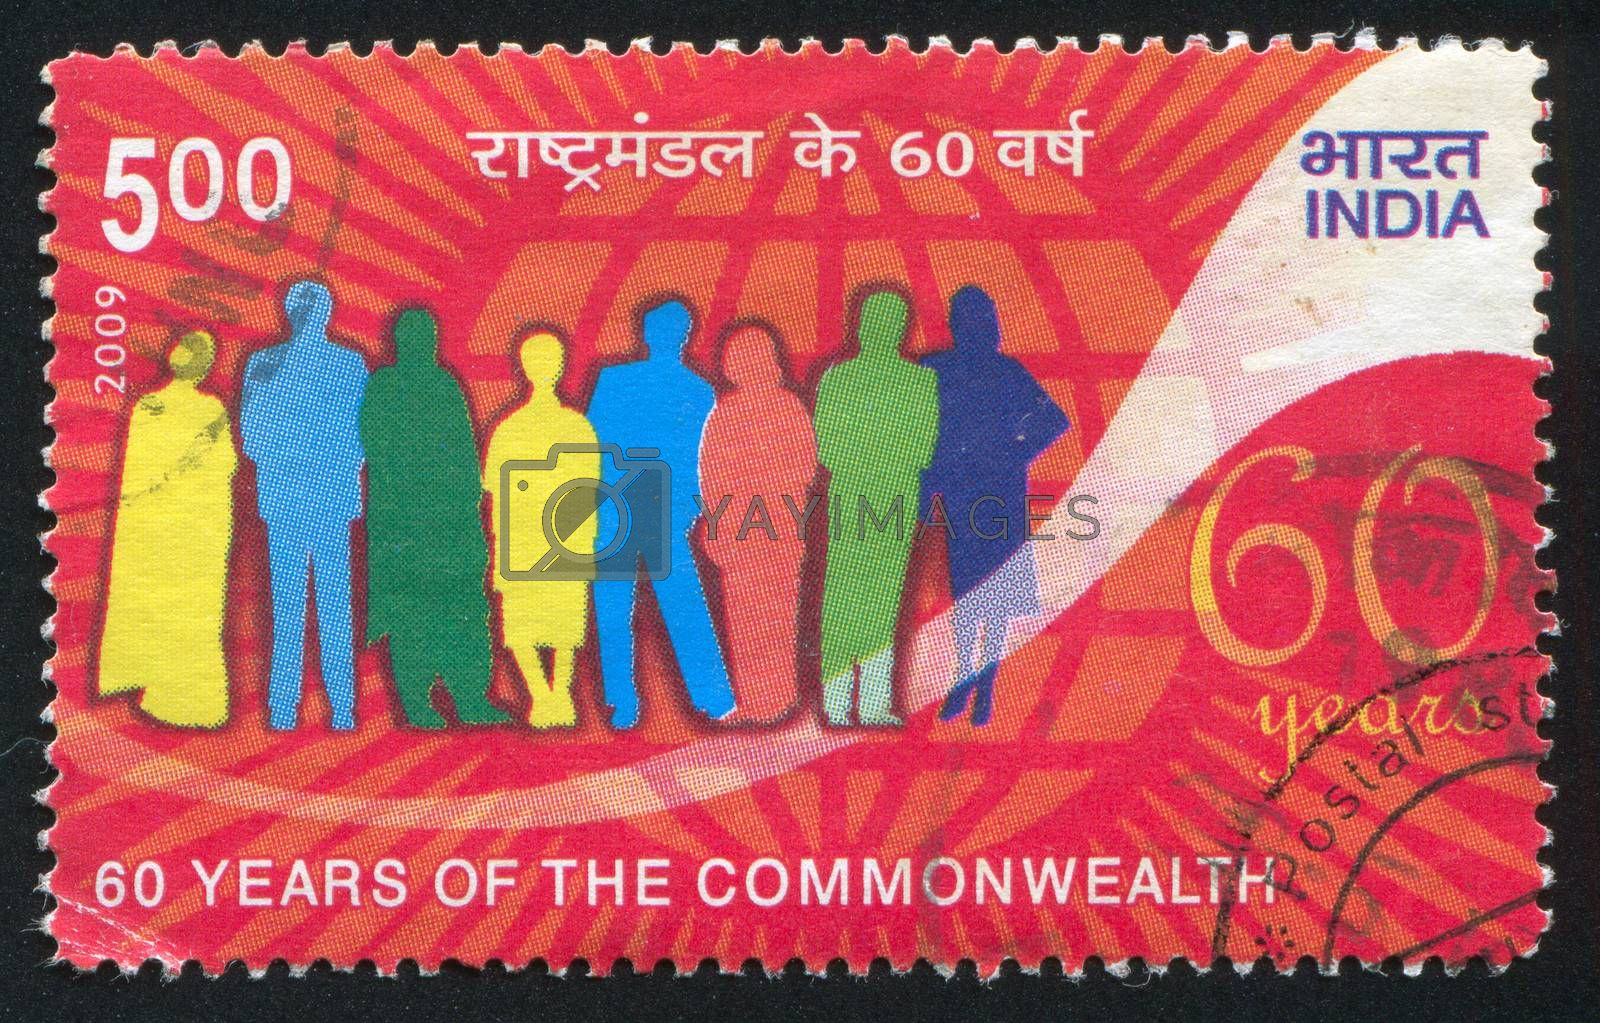 INDIA - CIRCA 2009: stamp printed by India, shows stylized people and globe, circa 2009